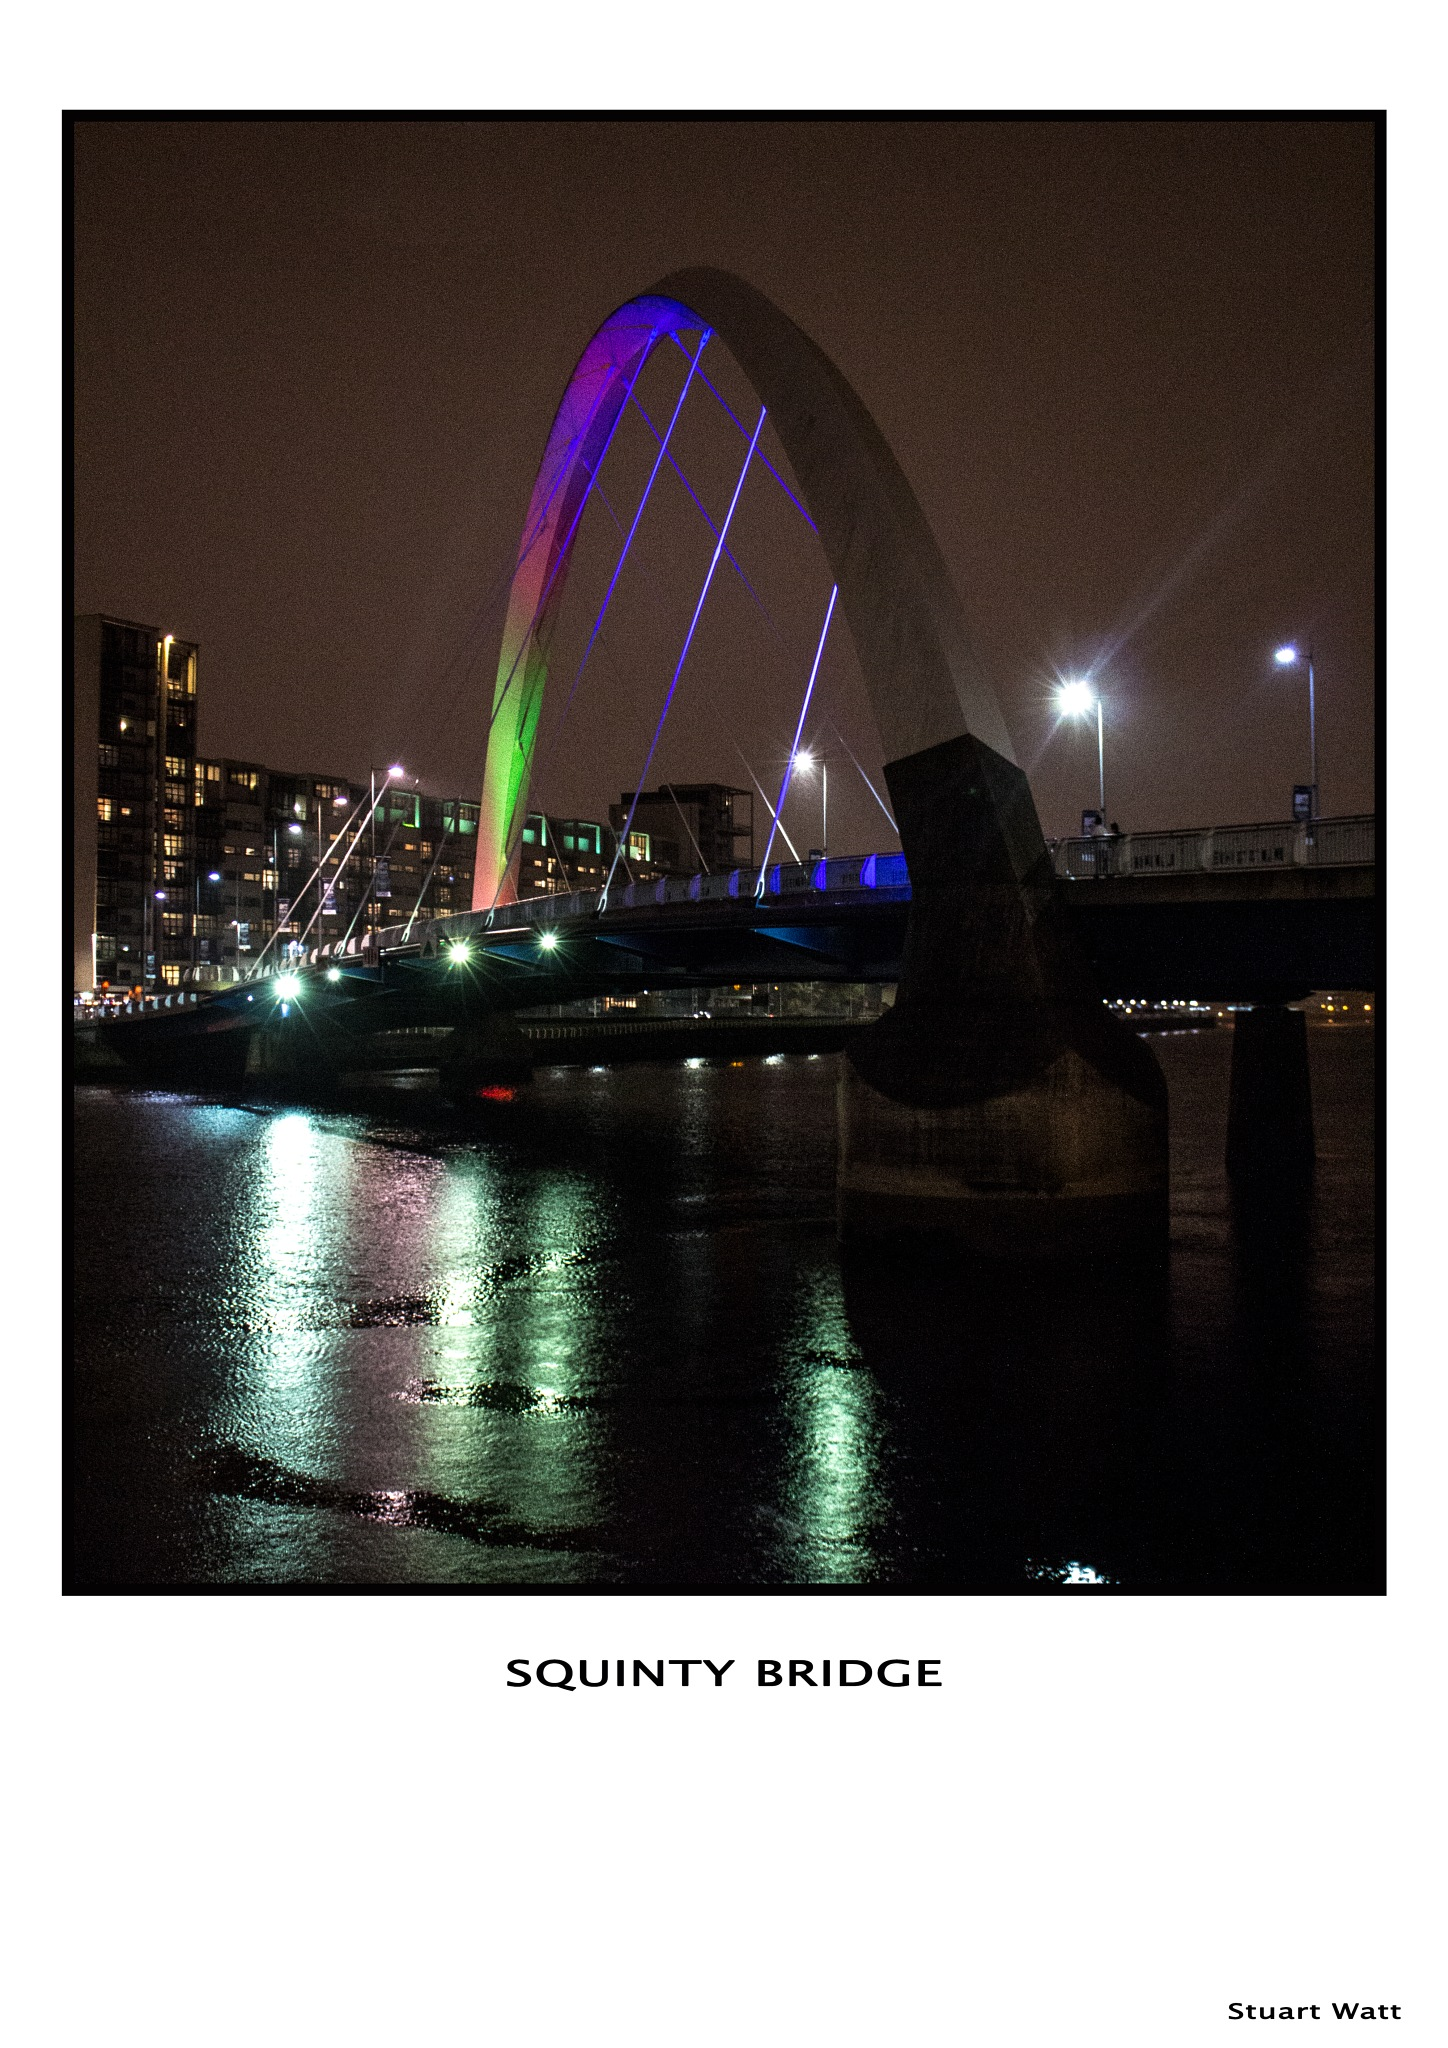 Squinty Bridge by Stuart Watt